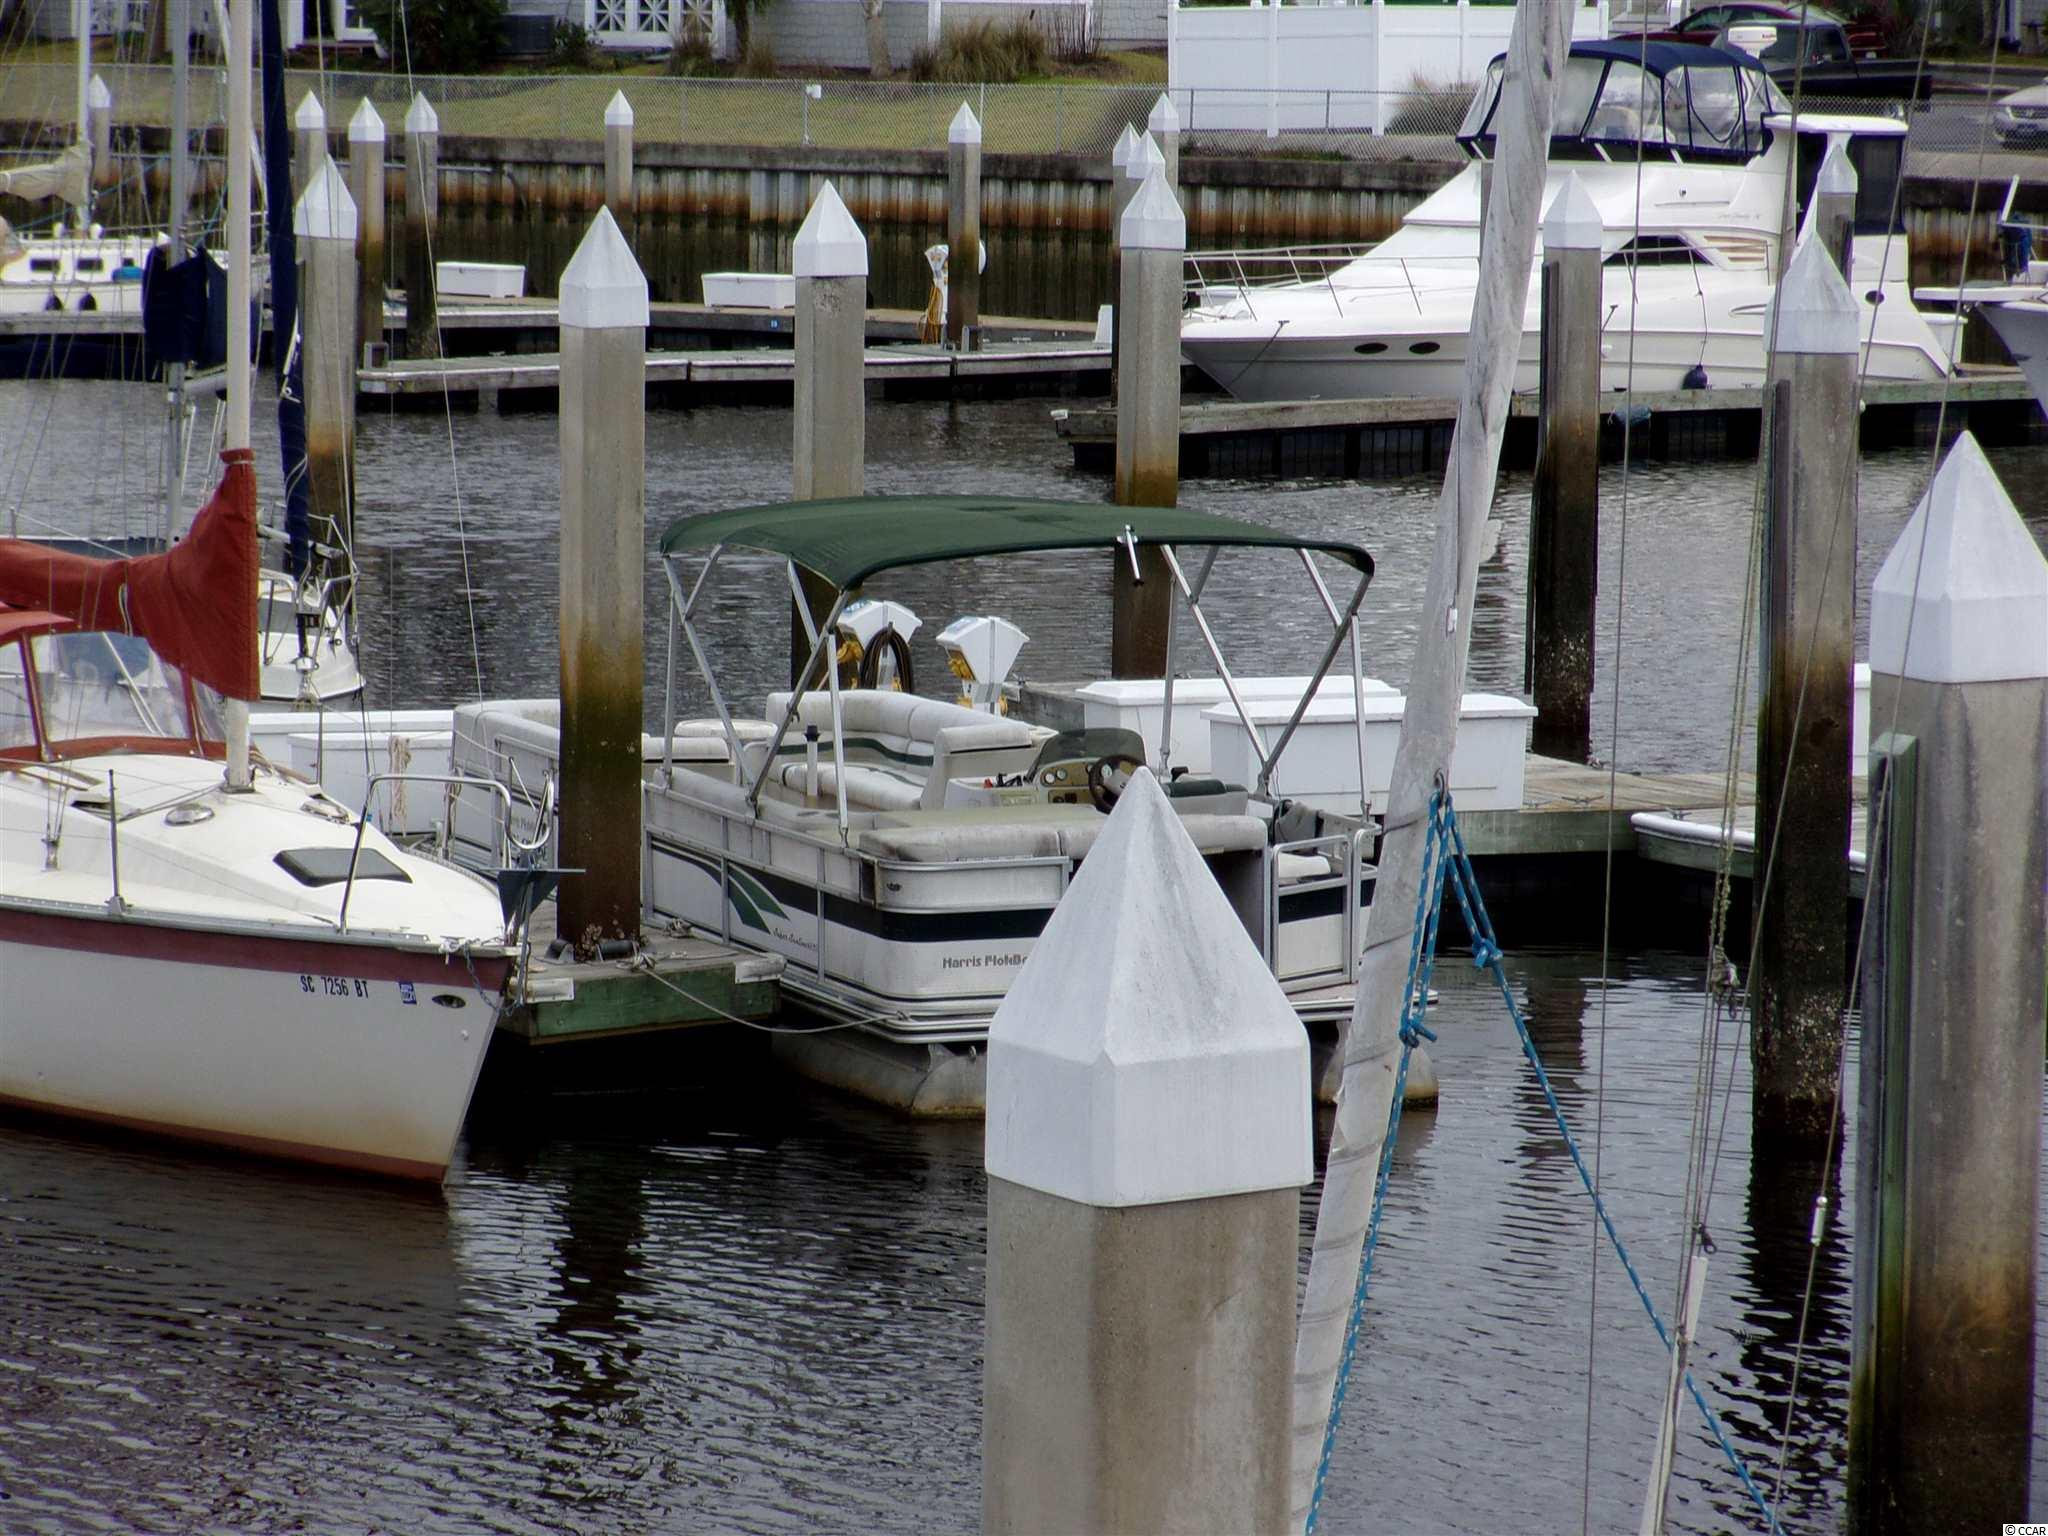 30' boat slip on the Little River Inlet! Dock Locker, Electricity and Water at each floating slip. Clubhouse with bar open 5 days a week, includes showers, year round pool and spa. The property is located in a gated and protected area with secure dock area. SQUARE FOOTAGE IS APPROXIMATE AND NOT GUARANTEED. BUYER IS RESPONSIBLE FOR VERIFICATION.